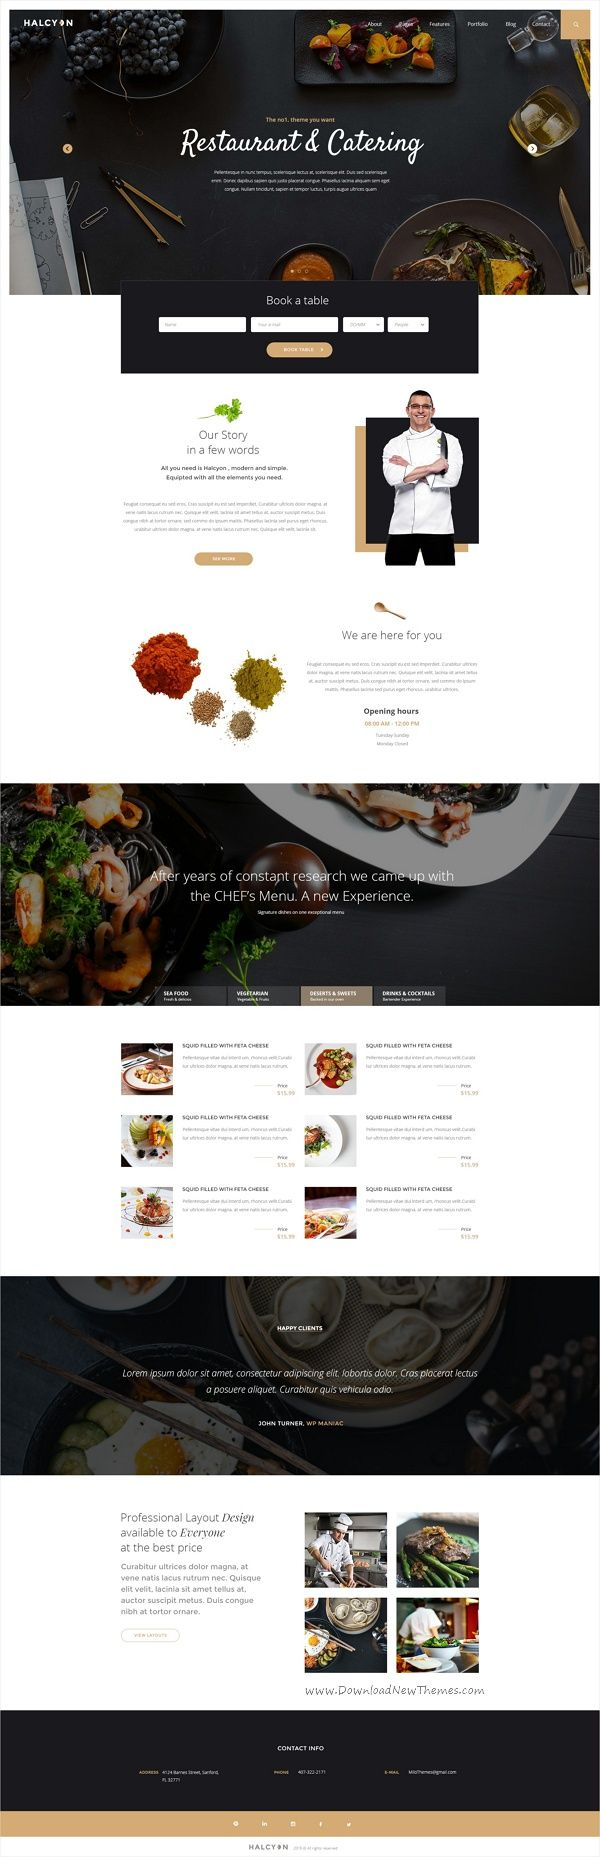 Halcyon is a beautifully design premium #PSD template for stunning #cafe #restaurant website with 30+ multipurpose homepage layouts and 52 organized PSD pages download now➩ https://themeforest.net/item/halcyon-multipurpose-modern-website-psd-template/17535264?ref=Datasata